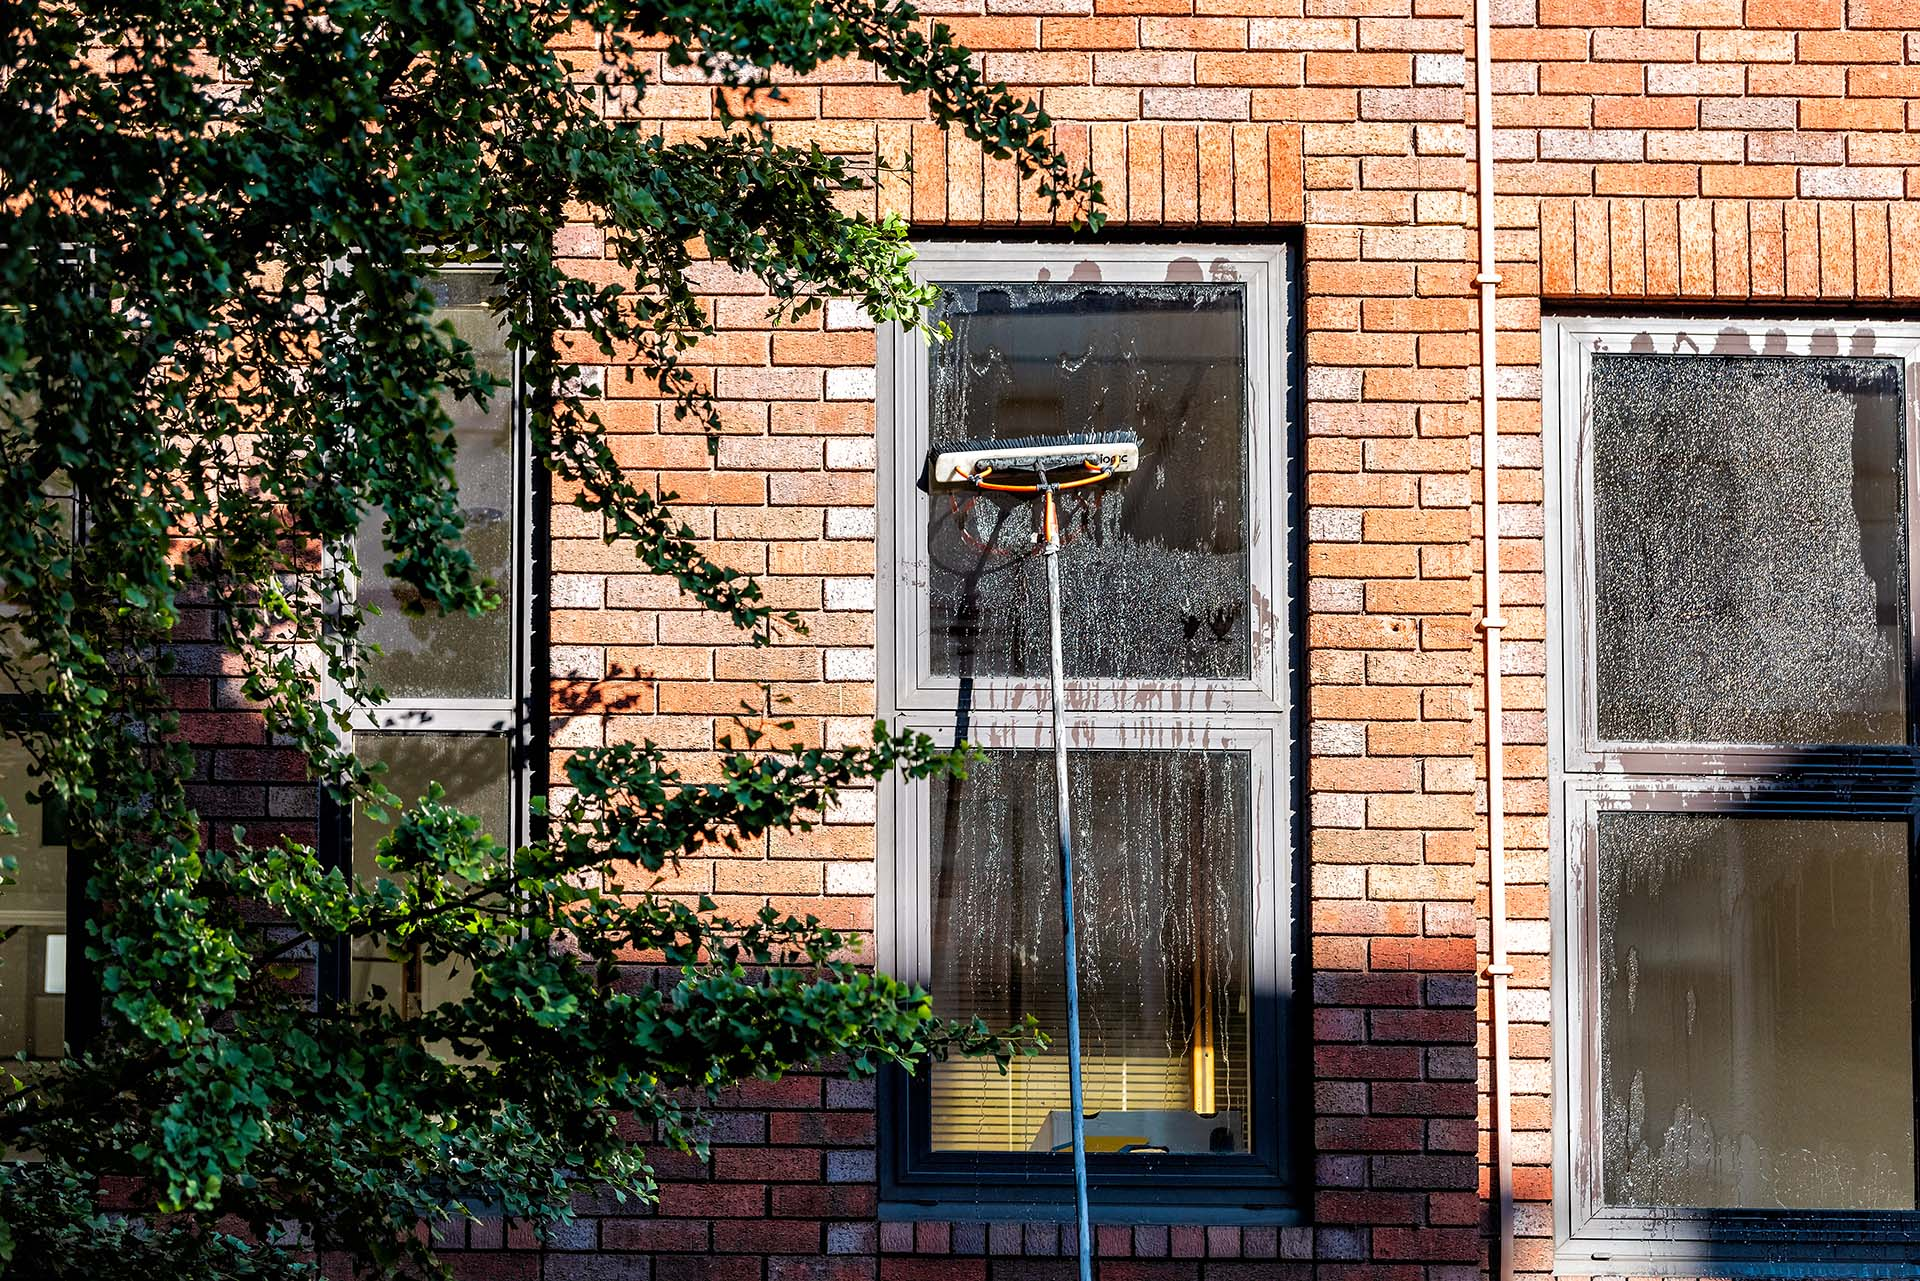 home-pro-painting-residential-window-cleaning.jpg